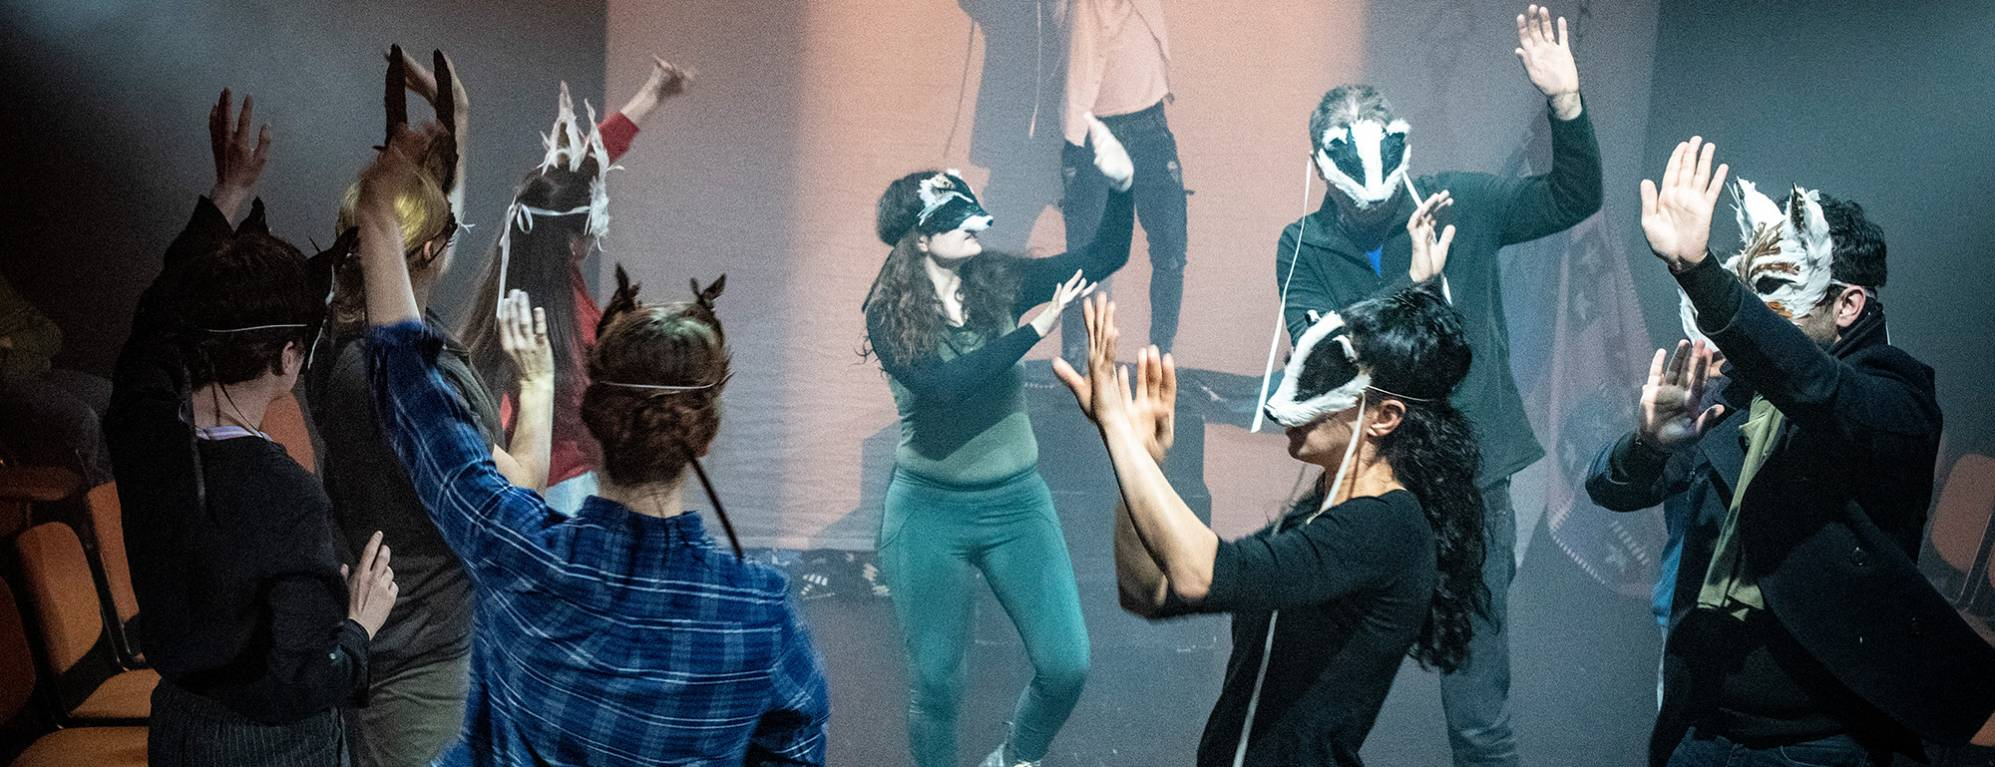 Actors dancing on stage wearing animal masks.